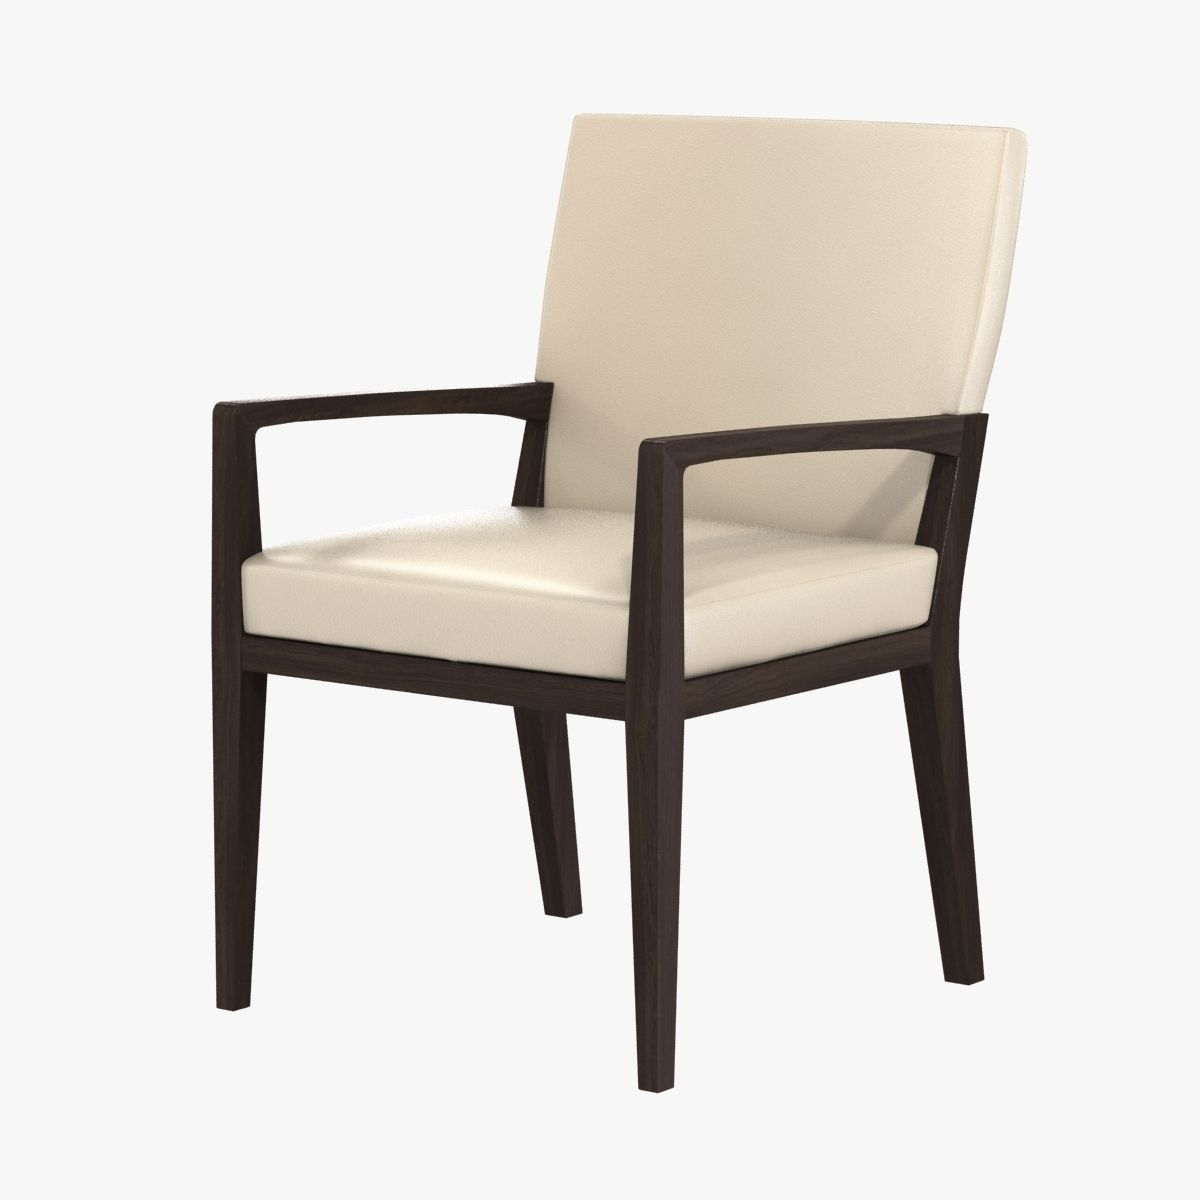 Holly Hunt LUNA DINING ARM CHAIR 3D Model MAX OBJ 3DS FBX  : holly hunt luna dining arm chair 3d model from www.cgtrader.com size 1200 x 1200 jpeg 49kB